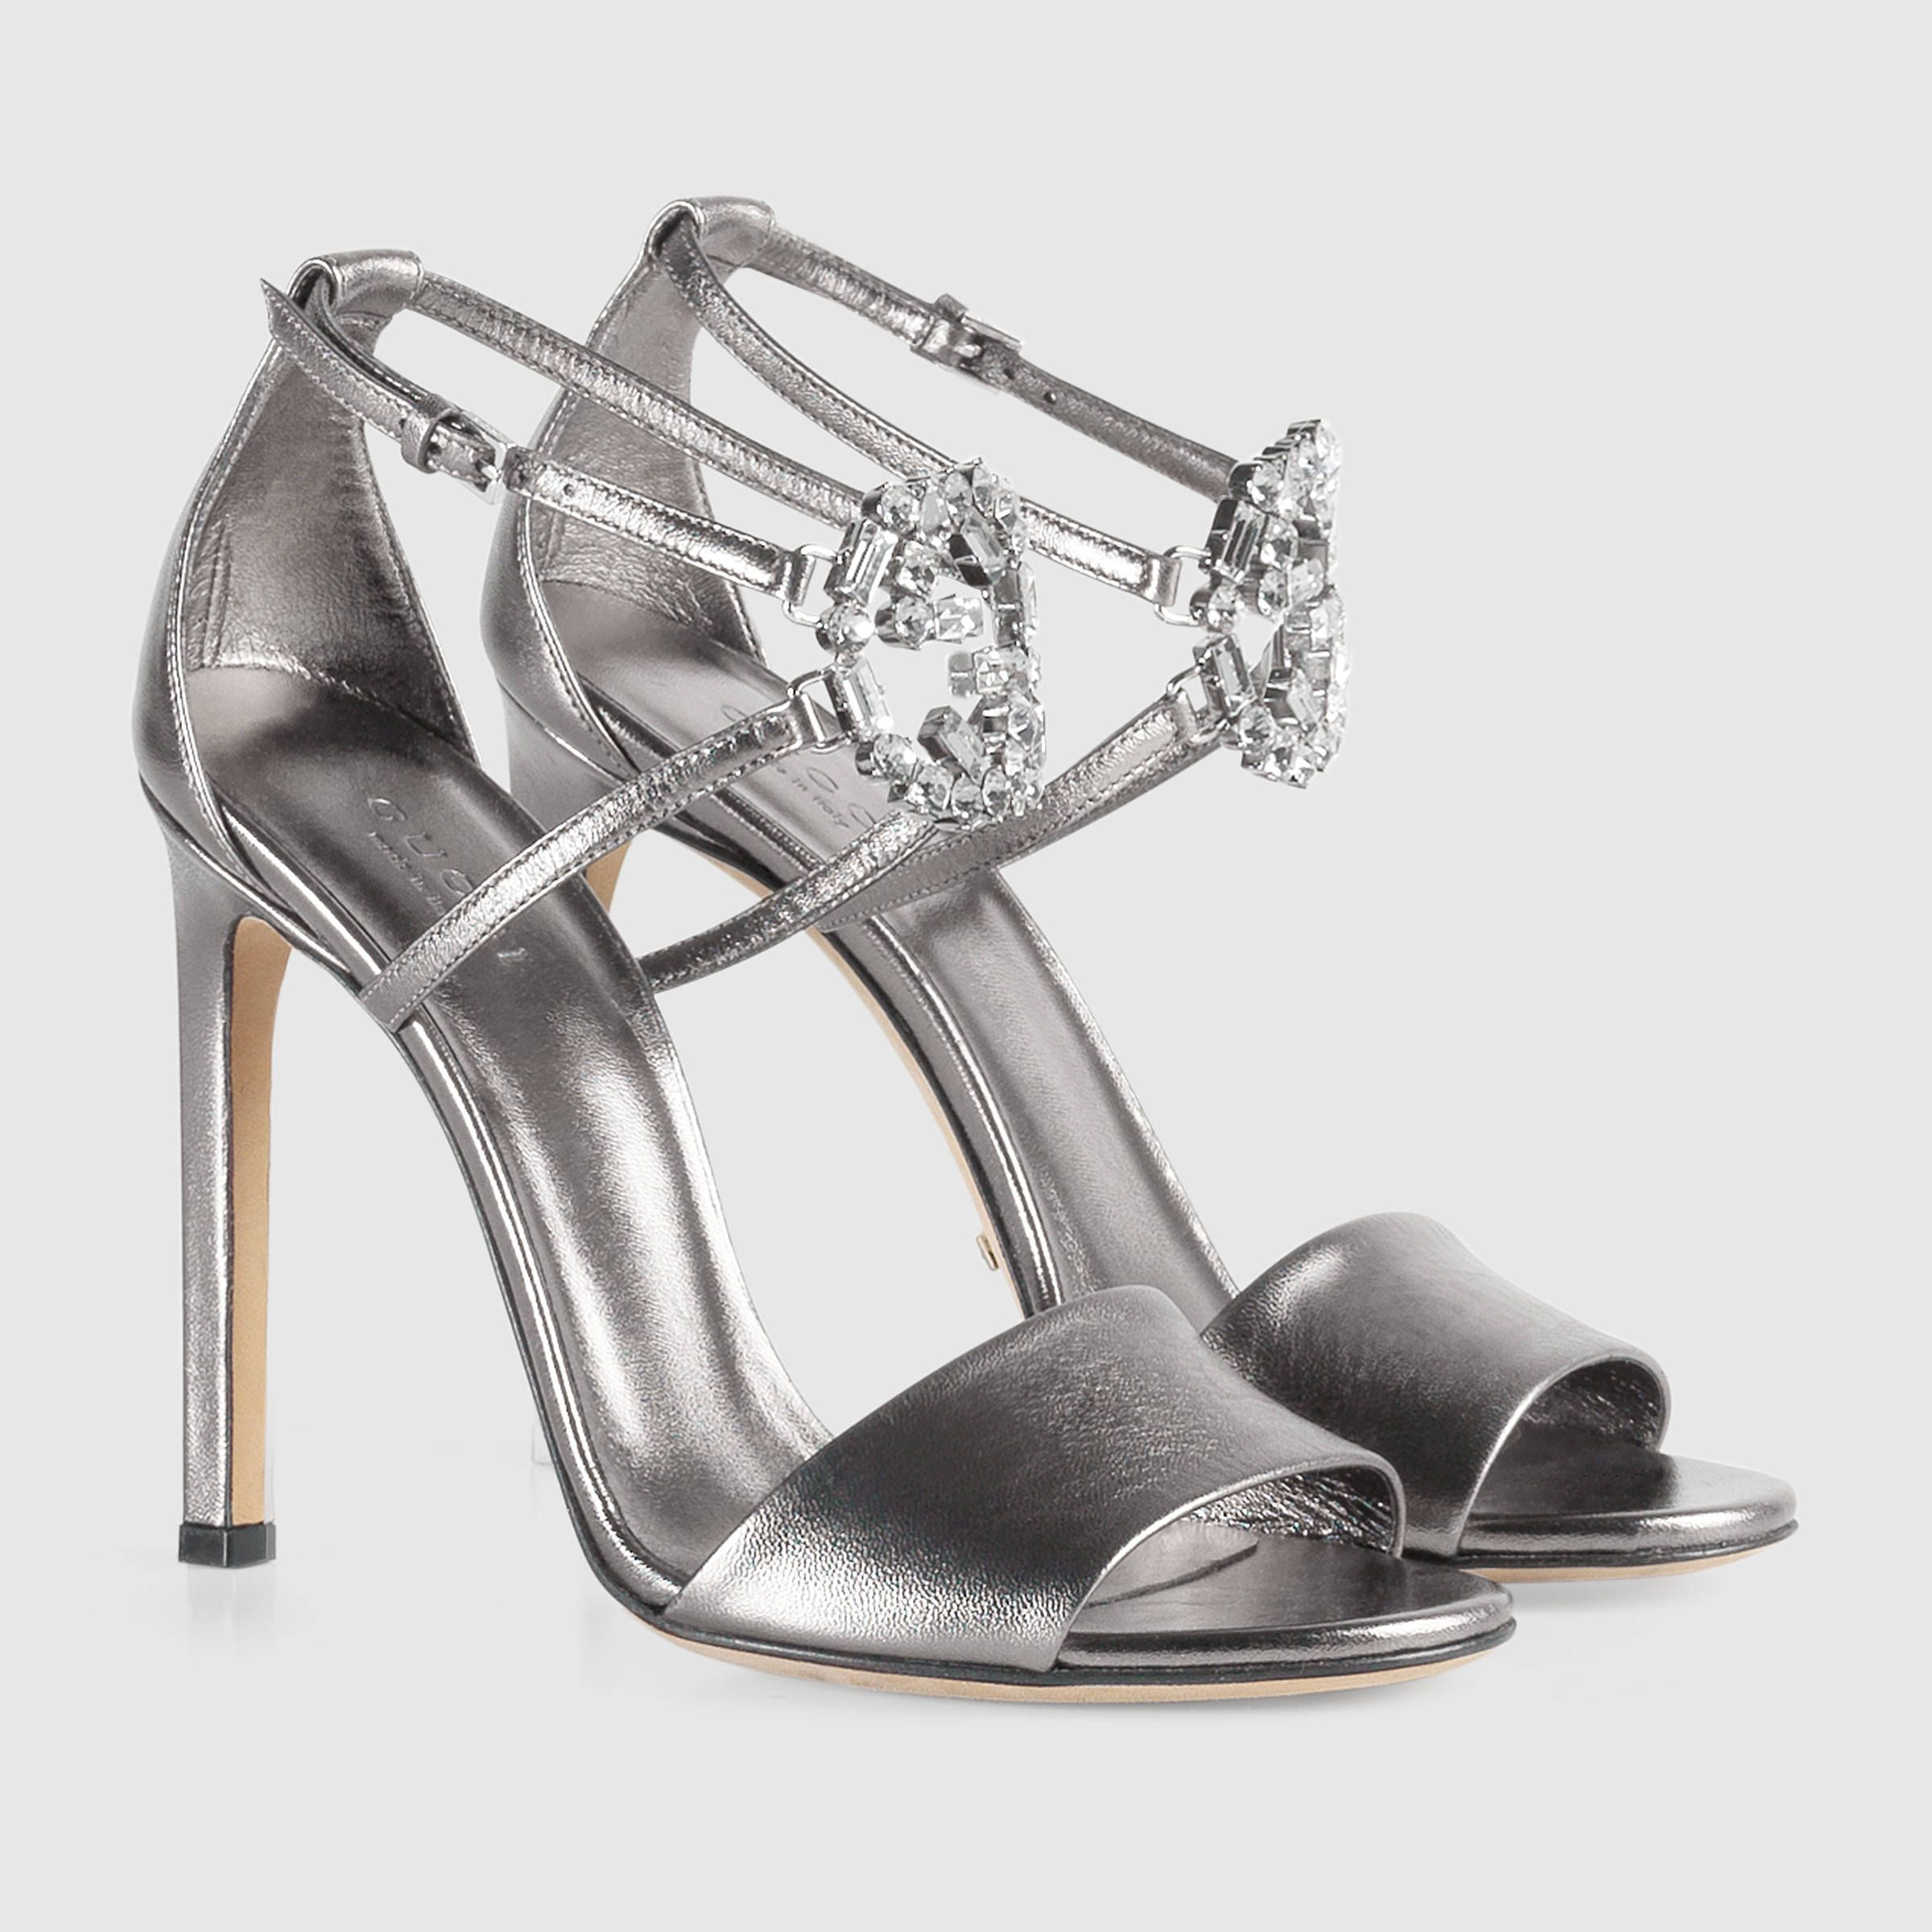 c01b00562d40 Gucci Women - Gucci GG Sparkling Silver Metallic leather sandals -  720.00